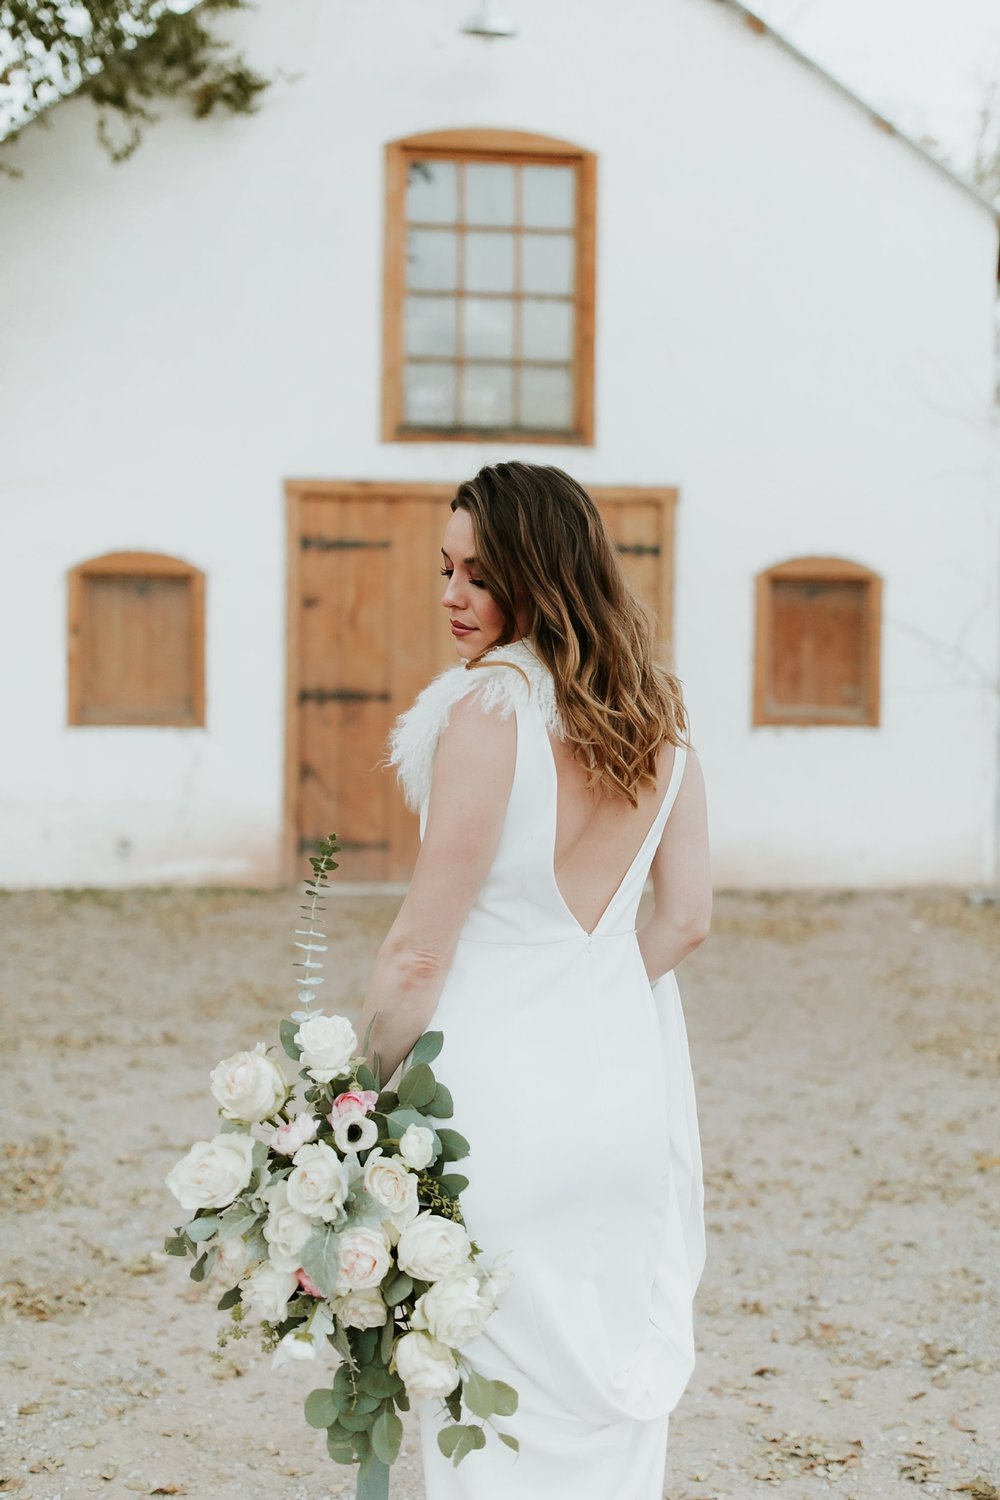 Alicia+lucia+photography+-+albuquerque+wedding+photographer+-+santa+fe+wedding+photography+-+new+mexico+wedding+photographer+-+bridal+shoot+-+styled+bridal+shoot+-+southwest+bride_0020.jpg